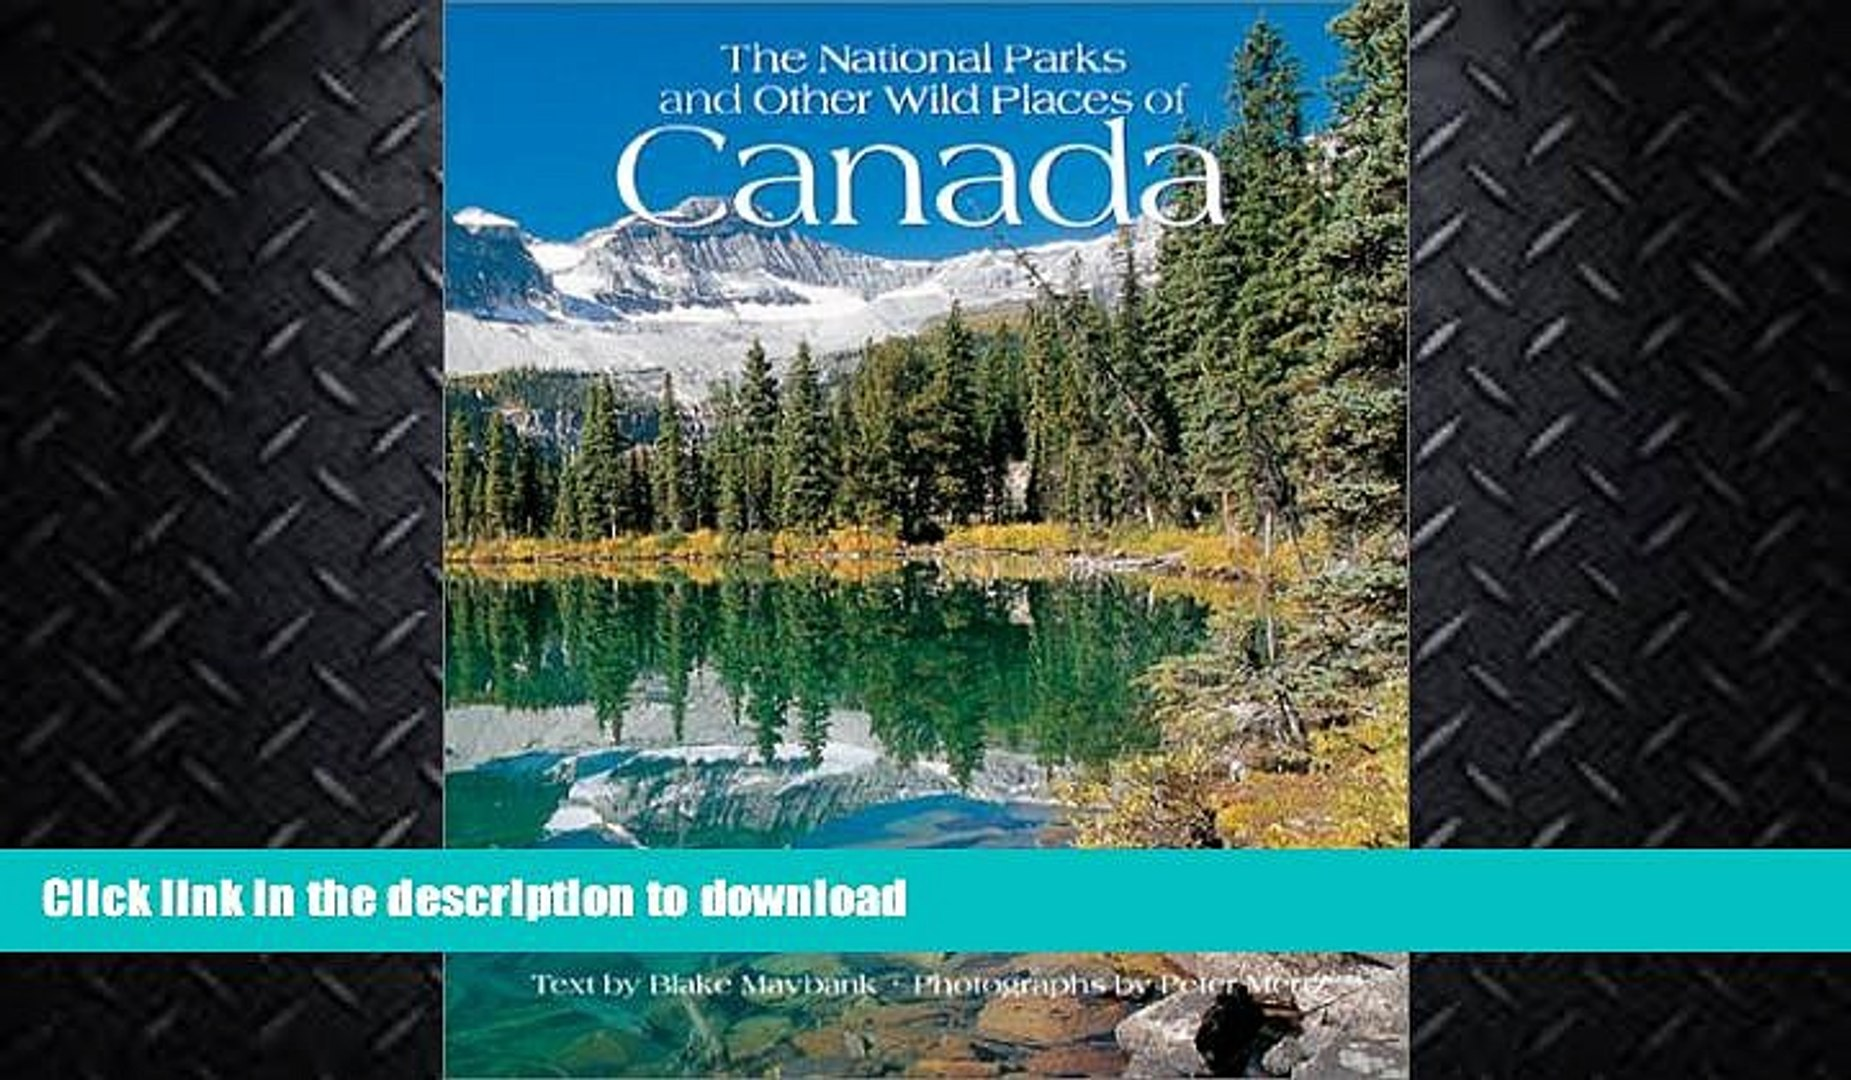 FAVORITE BOOK  The National Parks of Canada: And Other Wild Places (National Parks and Other Wild